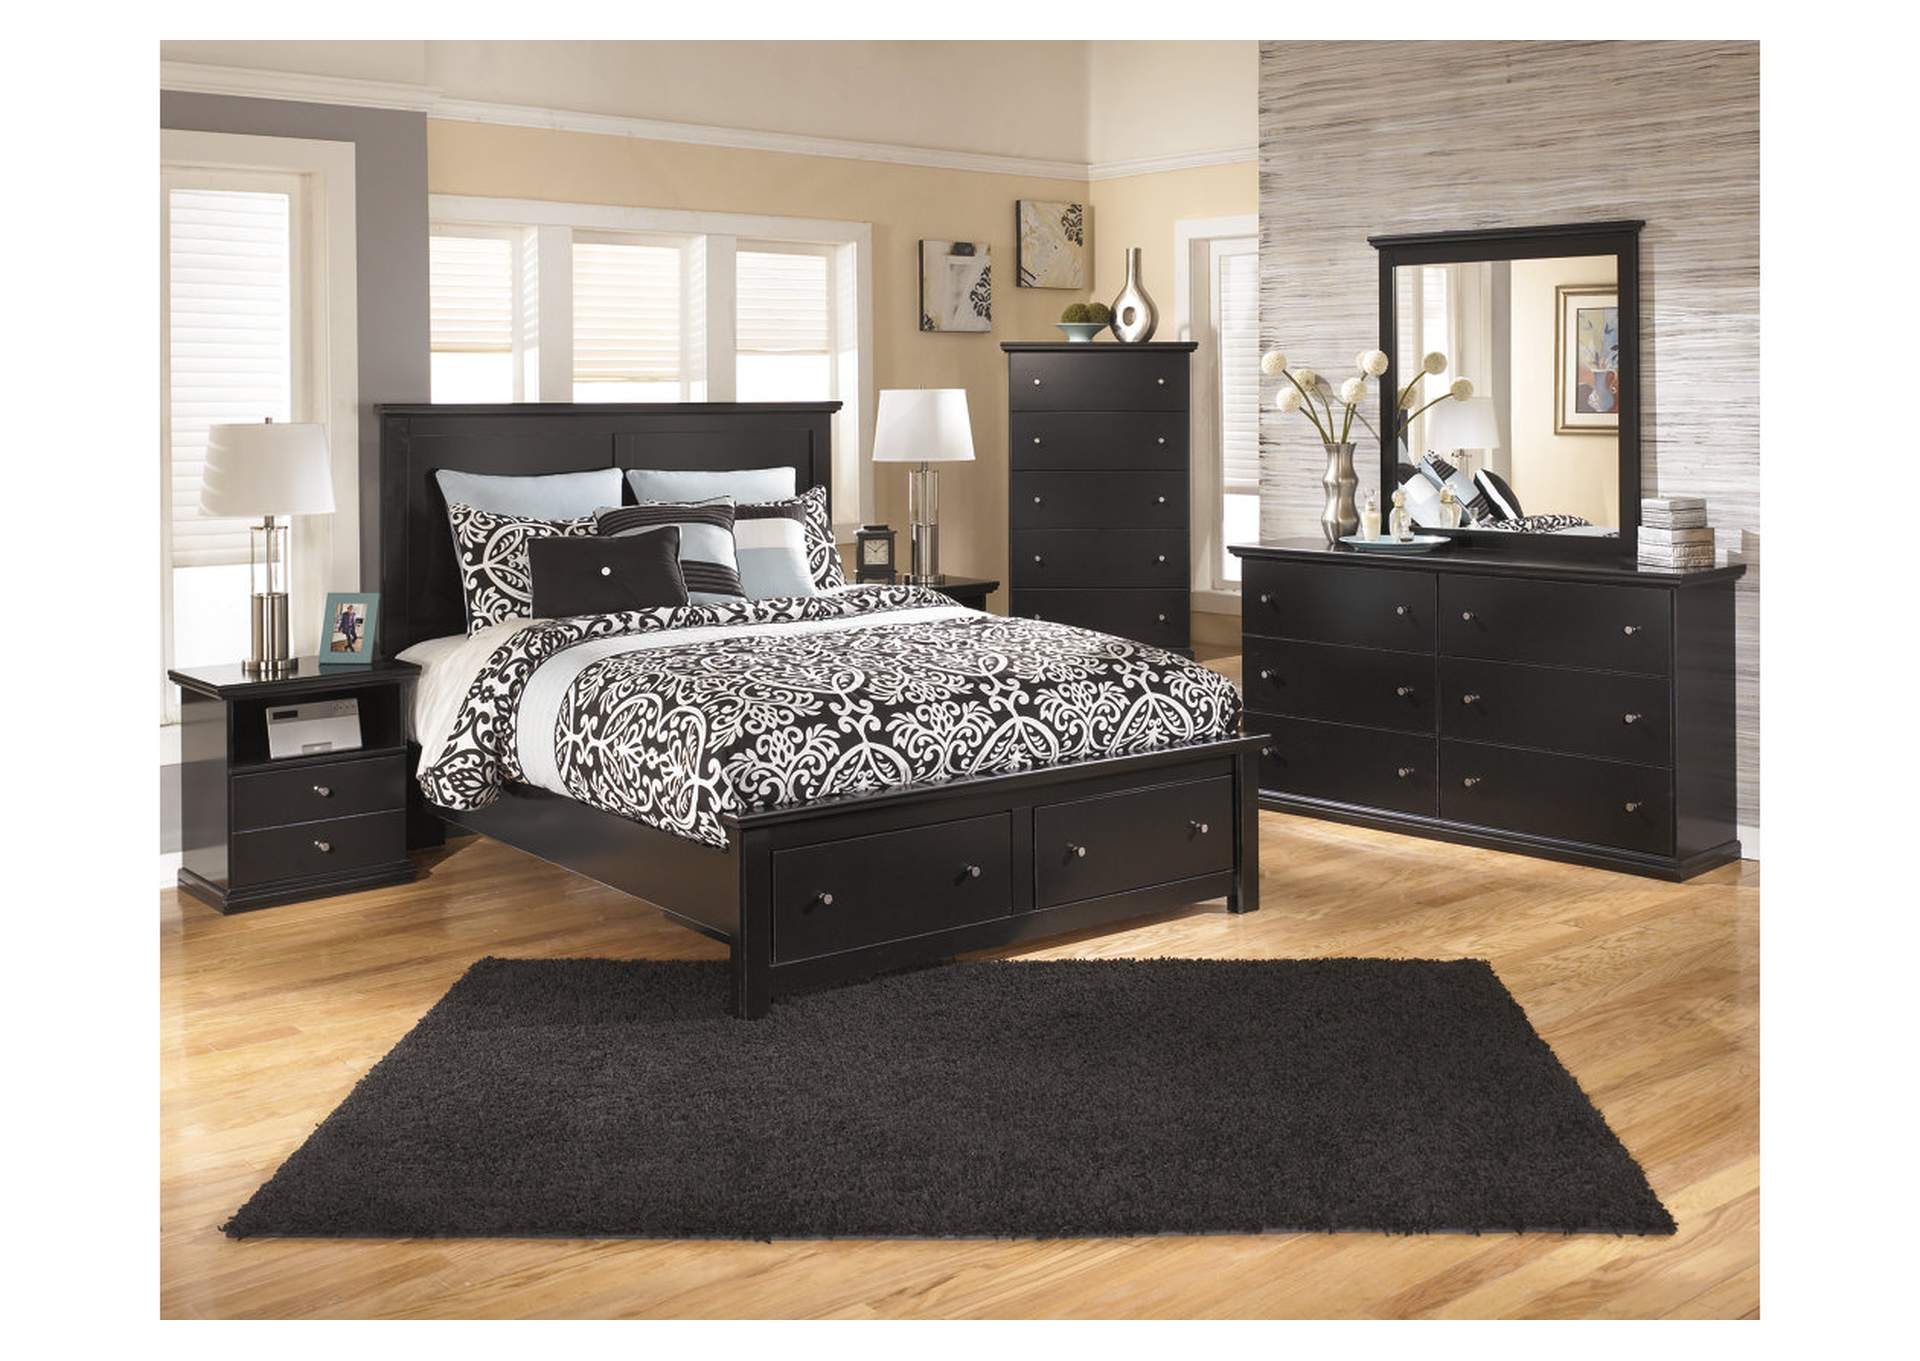 Maribel Black Queen Storage Platform Bed w/Dresser, Mirror, Drawer Chest & Nightstand,Signature Design By Ashley